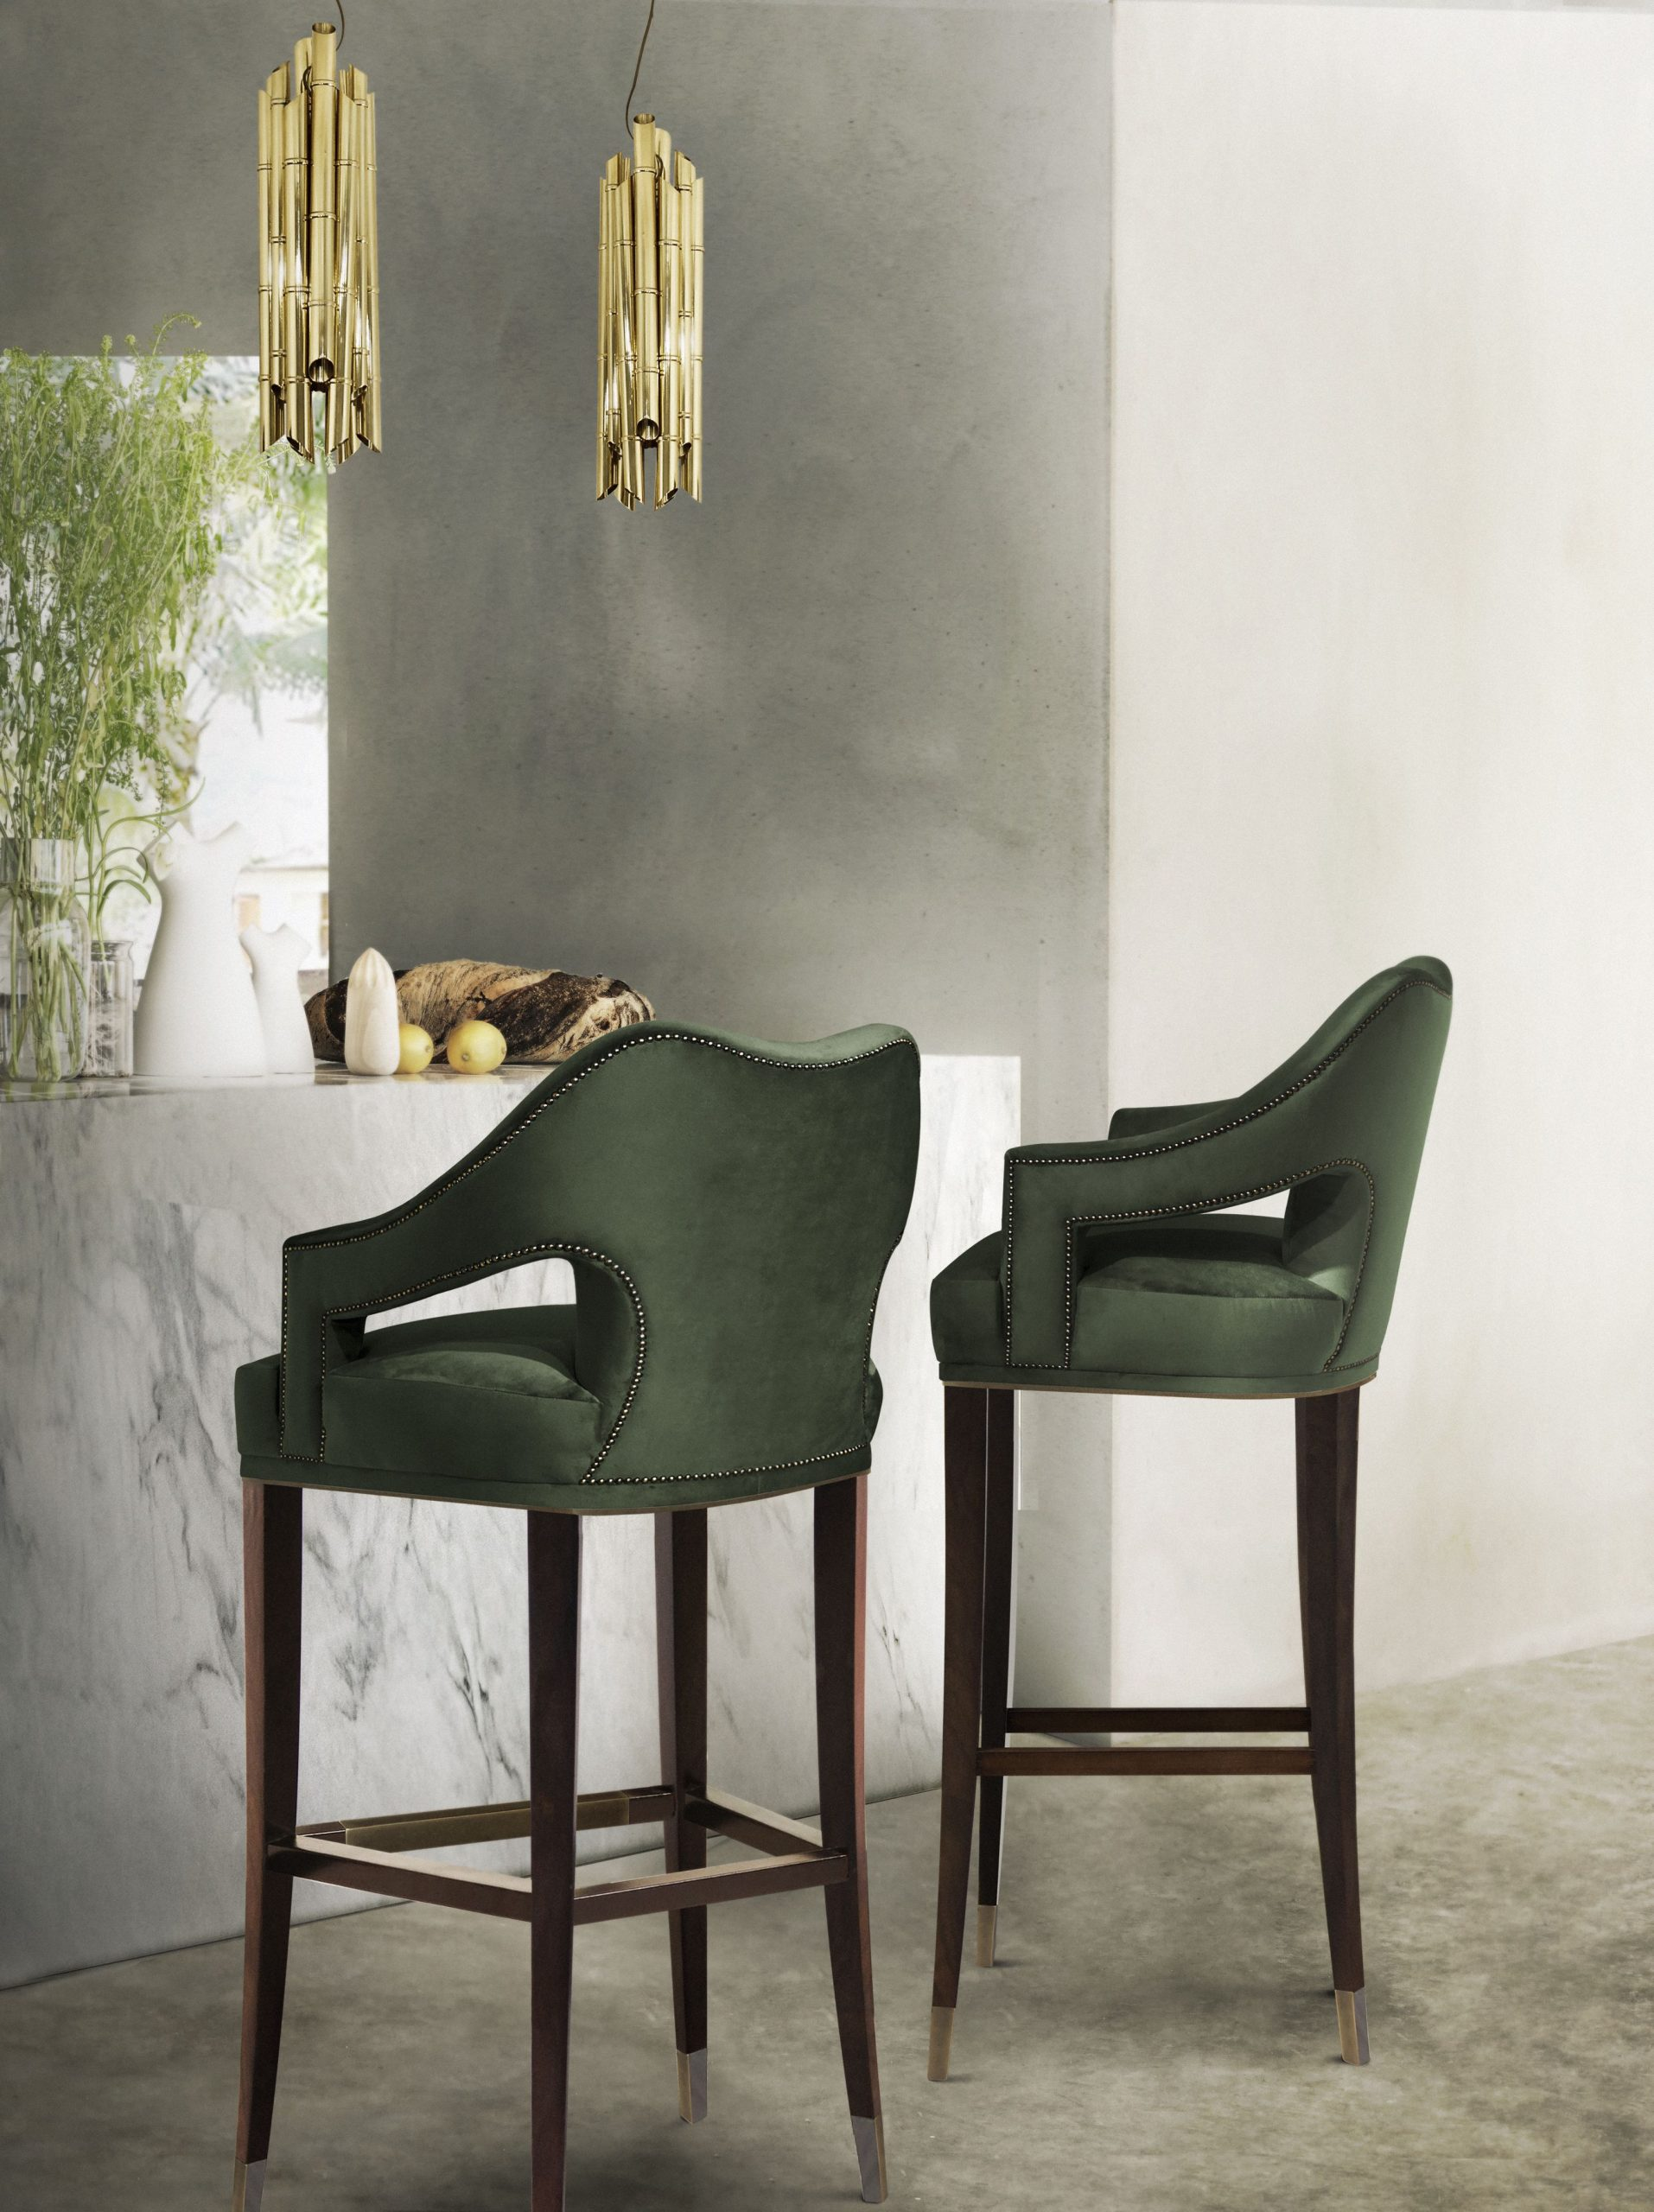 Earth tones: Renew Your Home With These Earth Tone Modern Chairs earth tones Earth tones: Renew Your Home With These Earth Tone Modern Chairs Earth tones Renew Your Home With These Earth Tone Modern Chairs 6 scaled